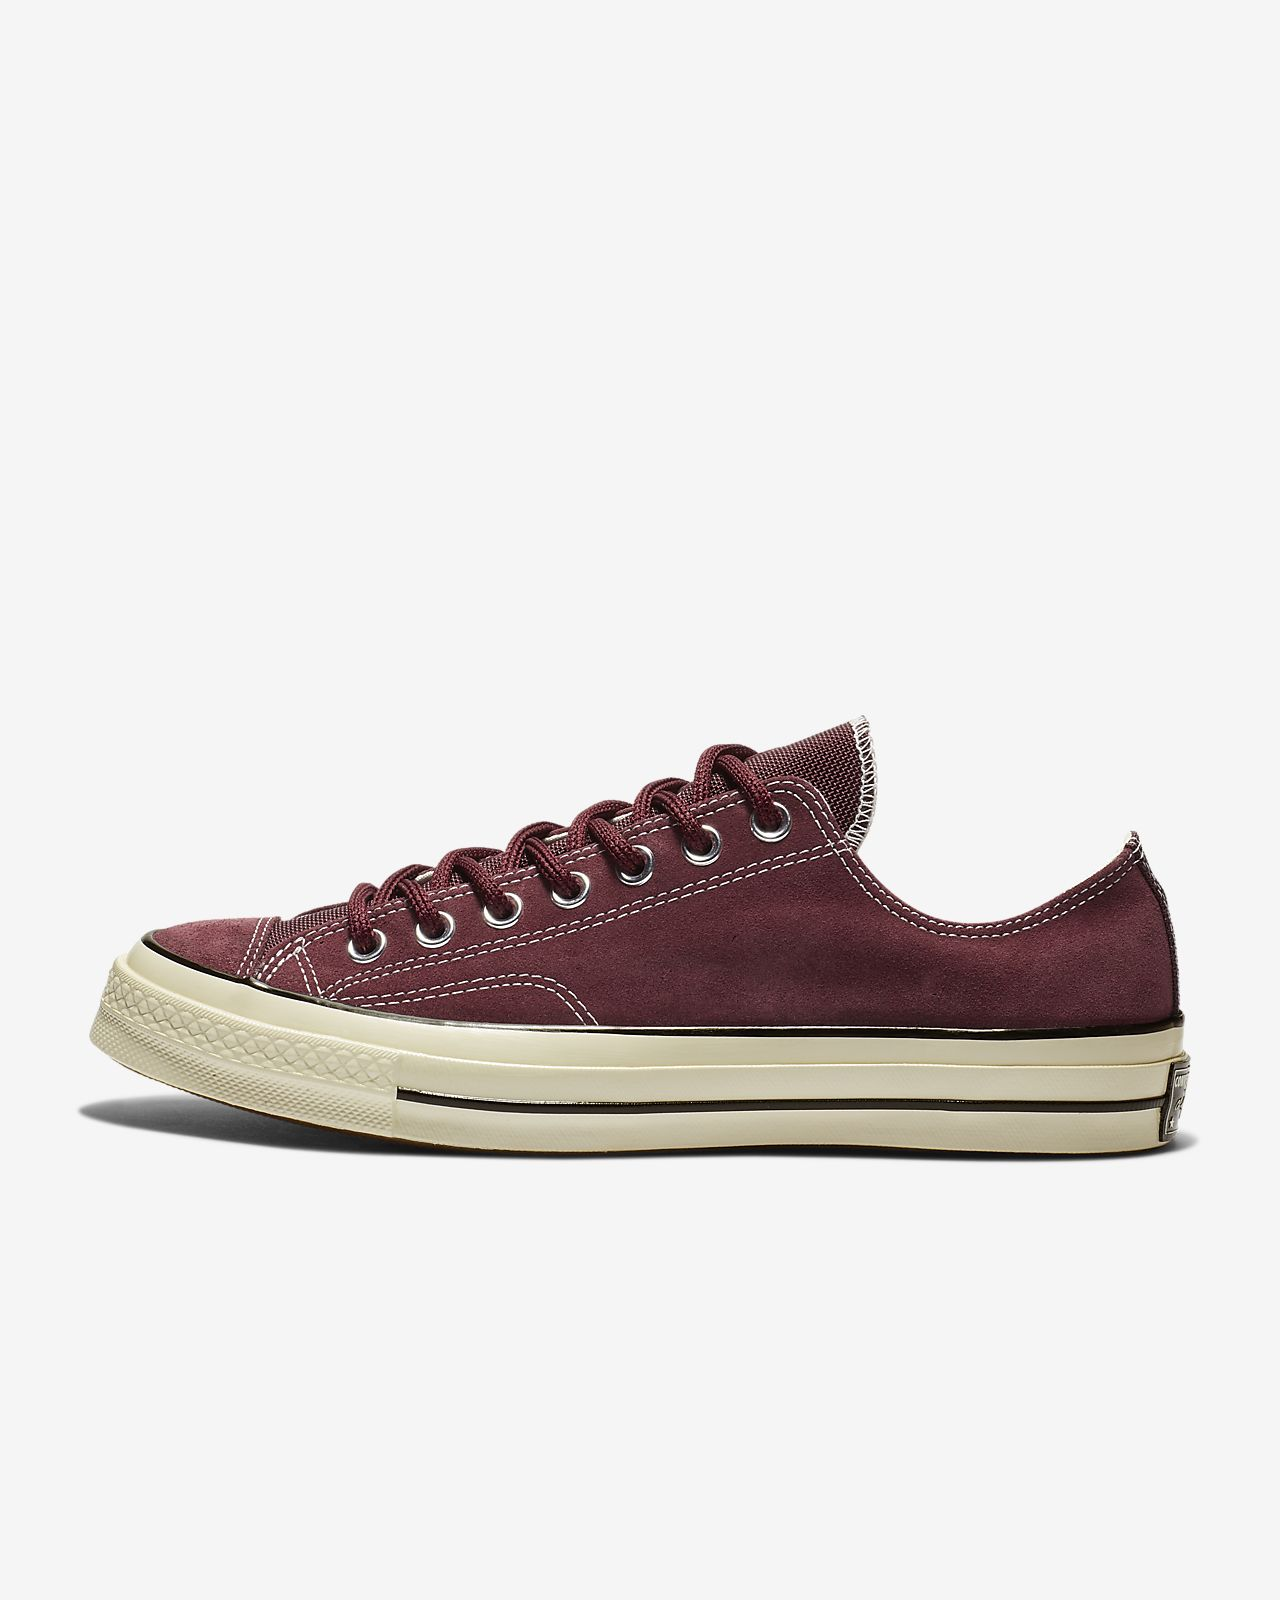 Converse Chuck 70 Suede Low Top Unisex Shoe